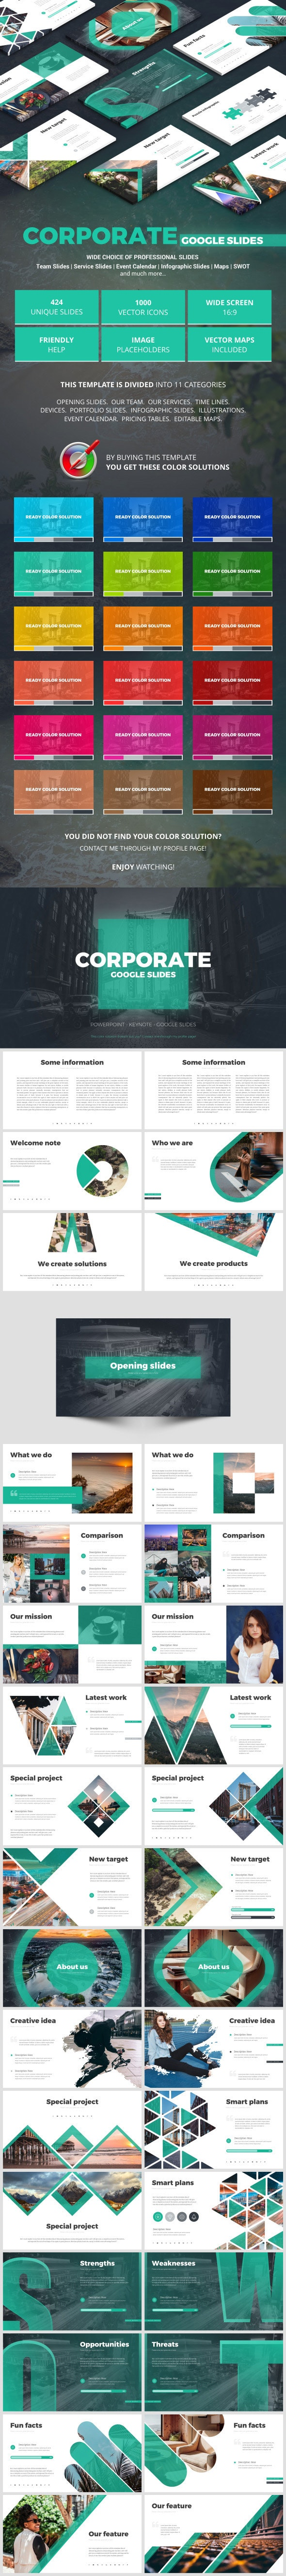 Corporate Google Slides - Google Slides Presentation Templates